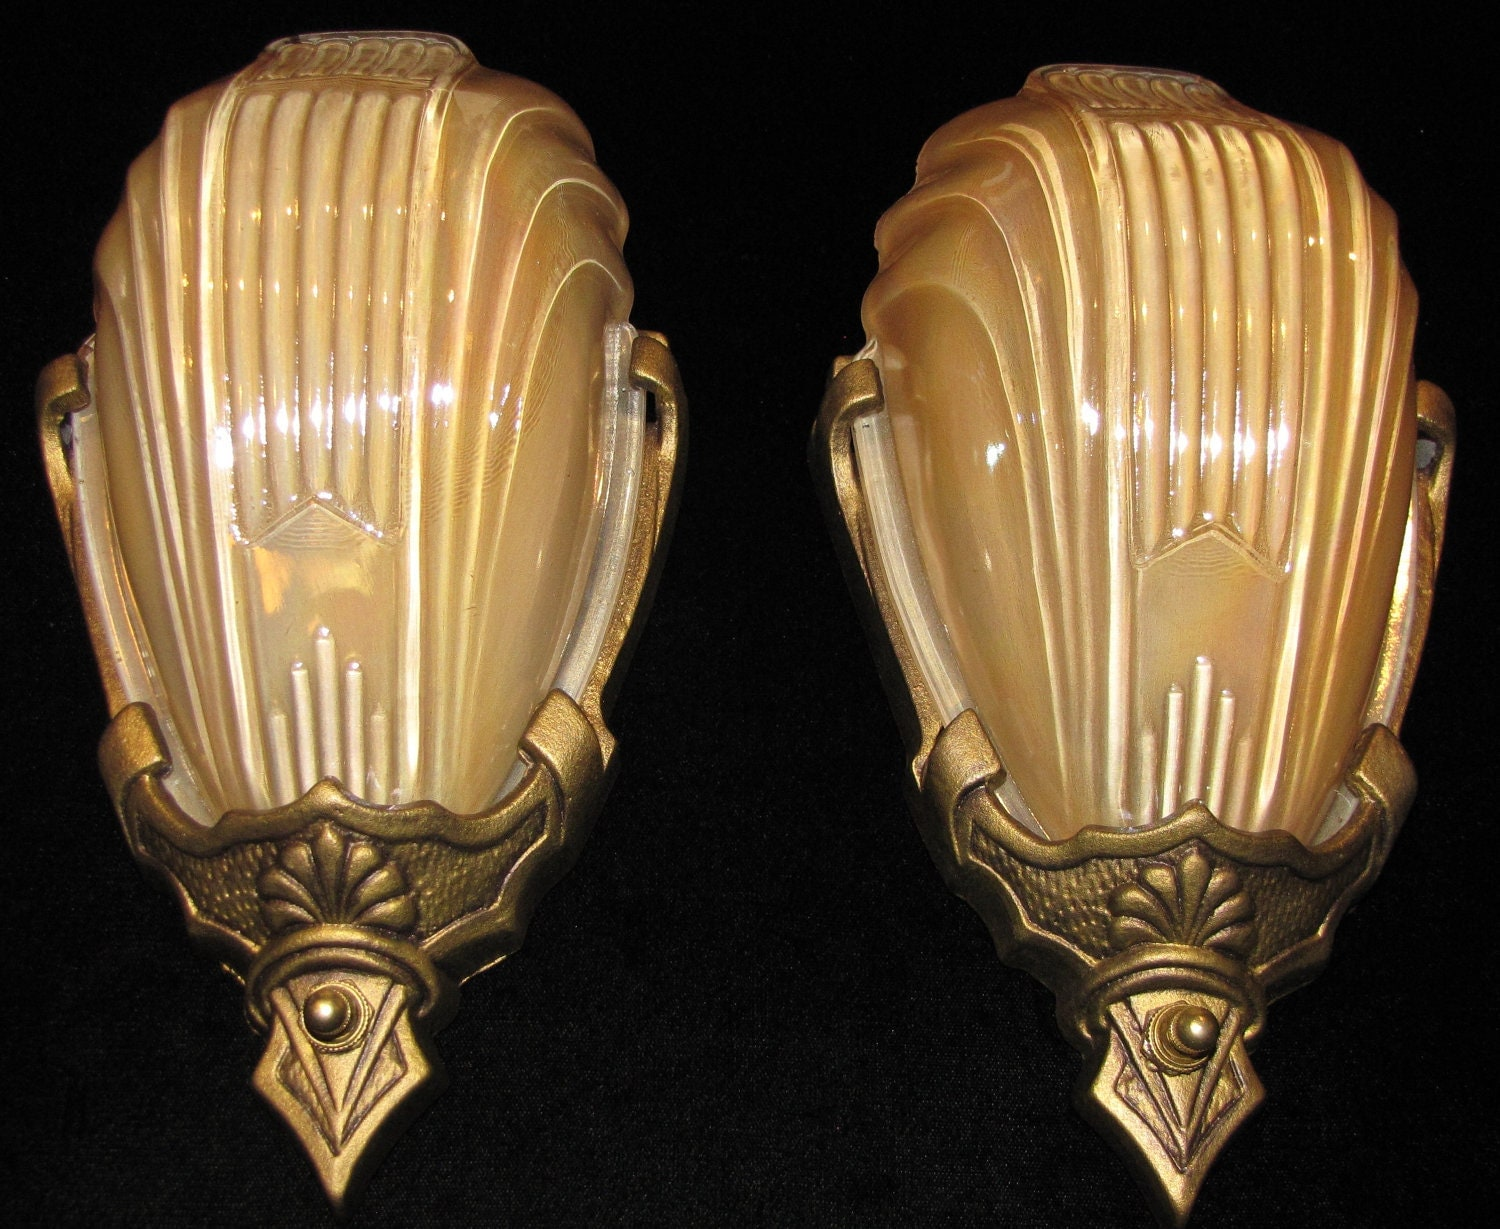 Vintage Pair of Art Deco Wall Sconces With Slip Shades